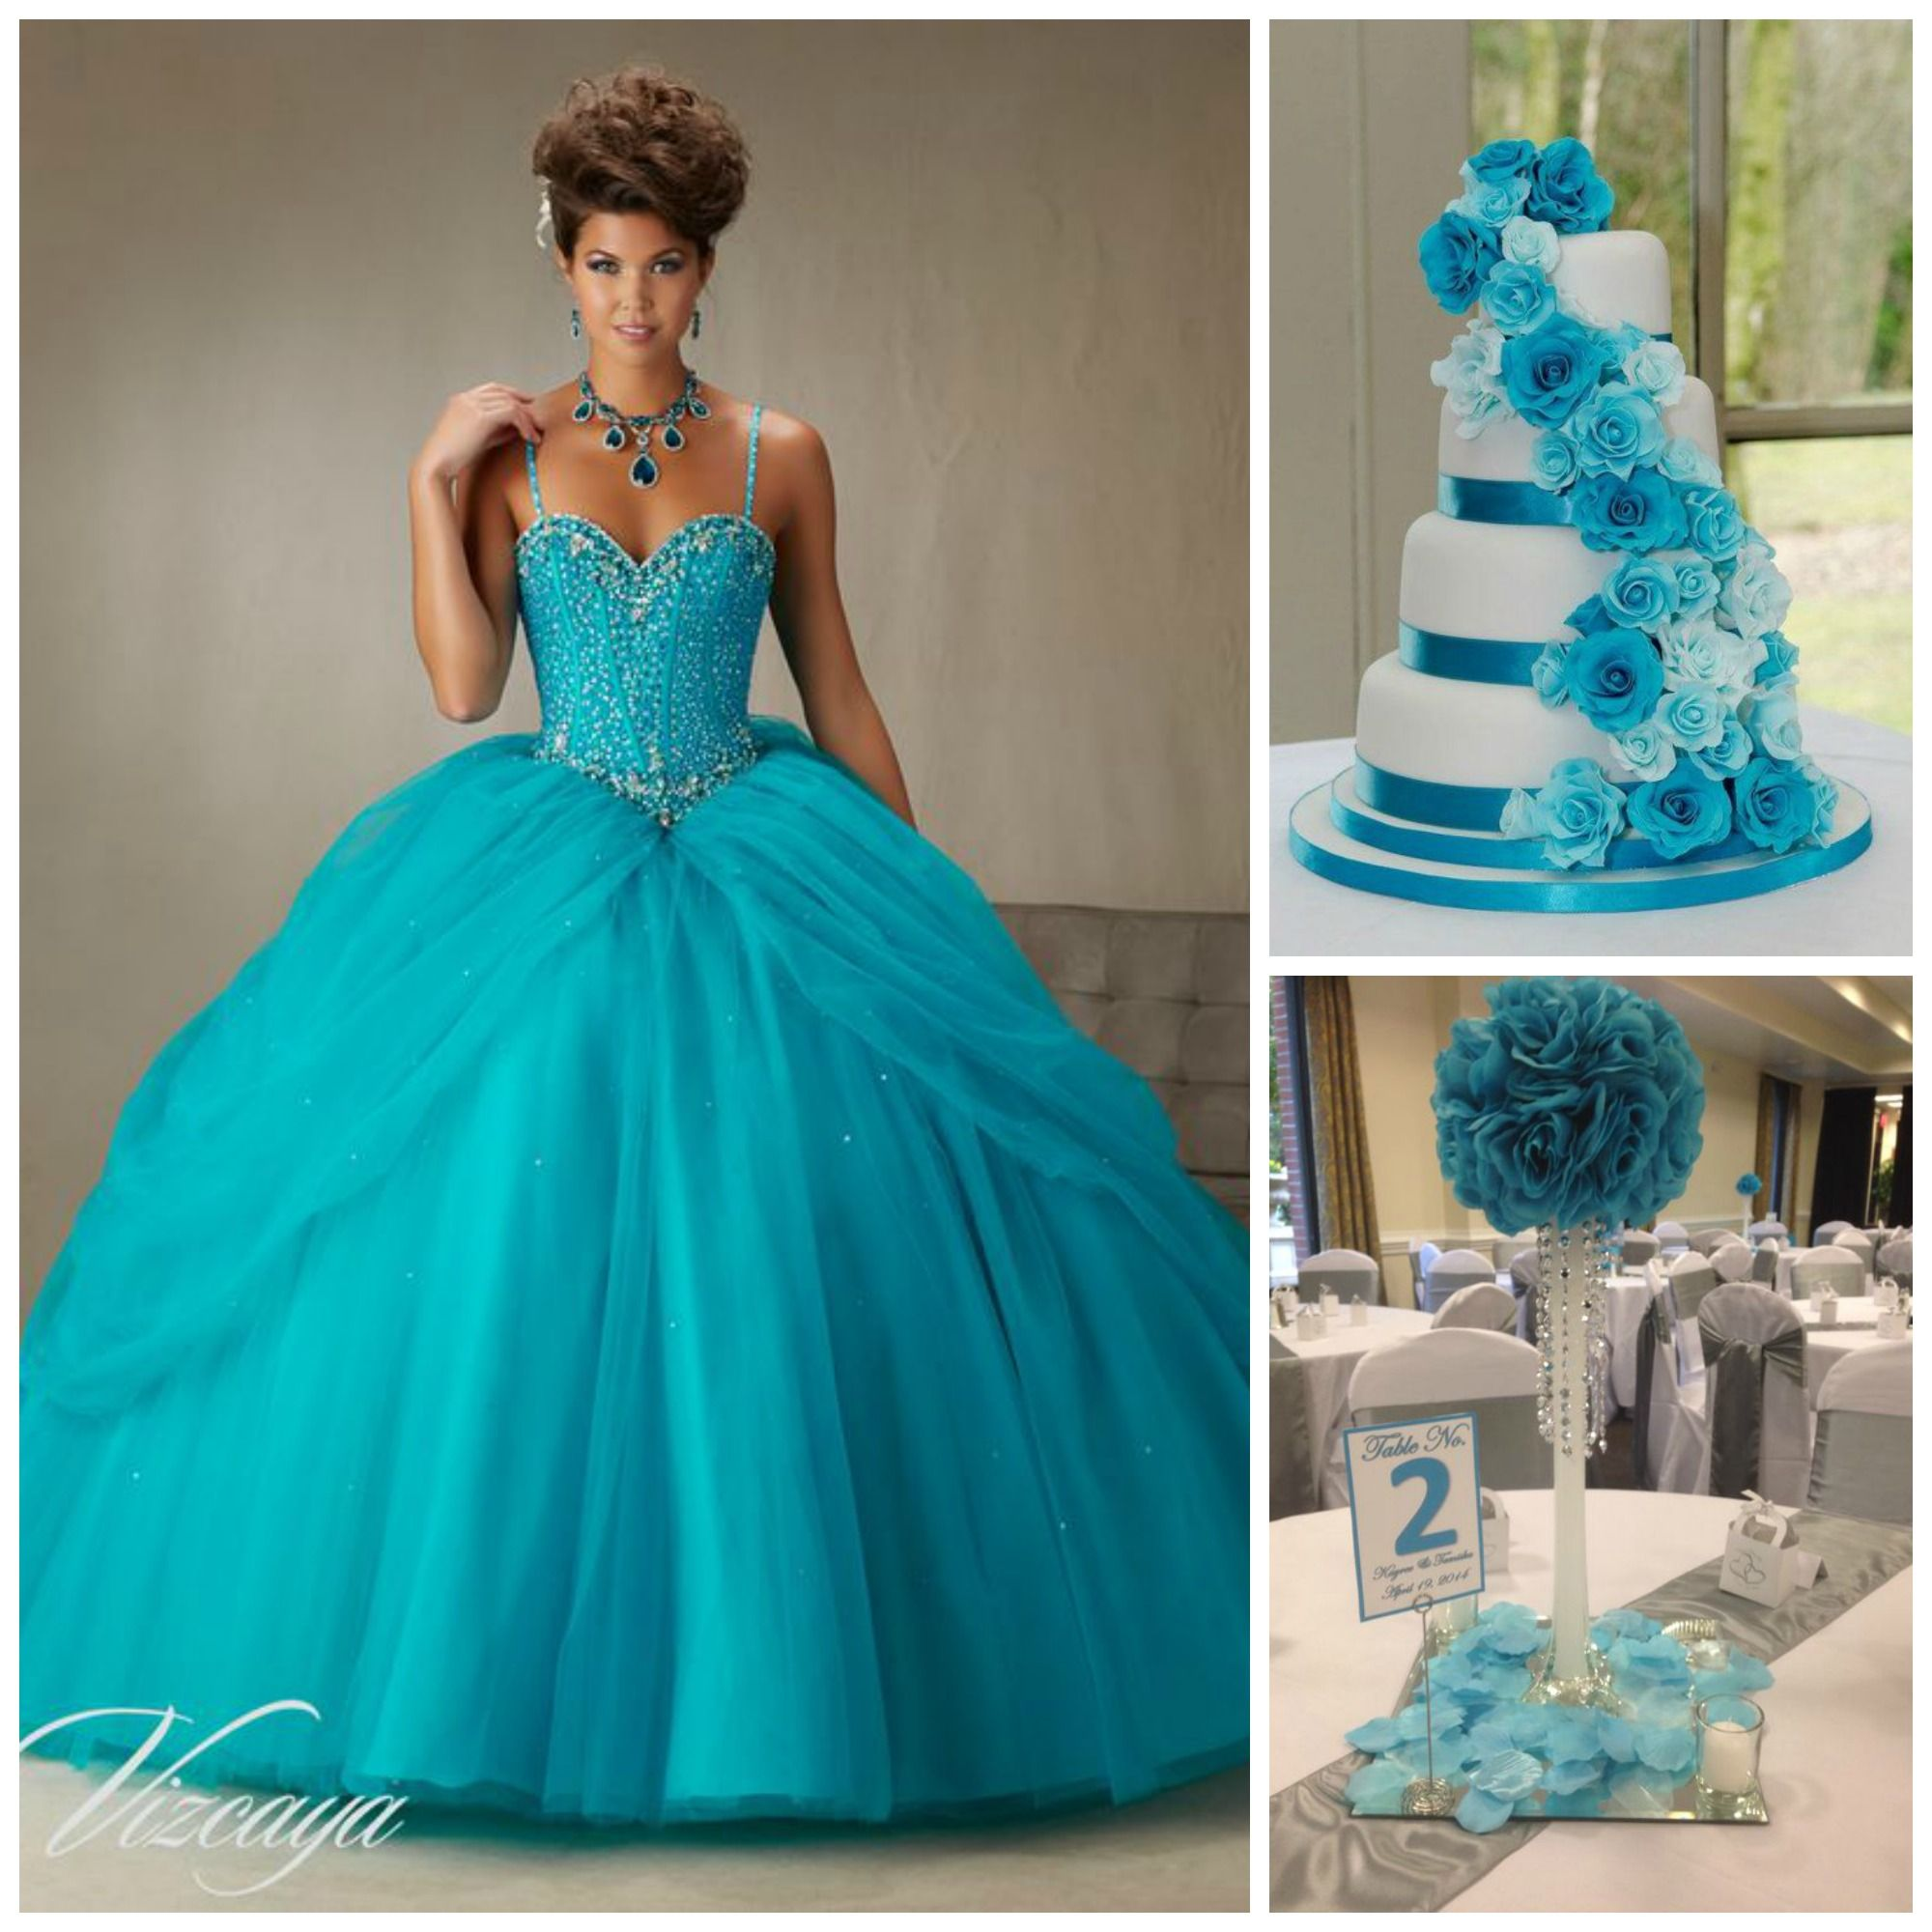 Quince Theme Decorations | Blue centerpieces, Blue cakes and Dress blues